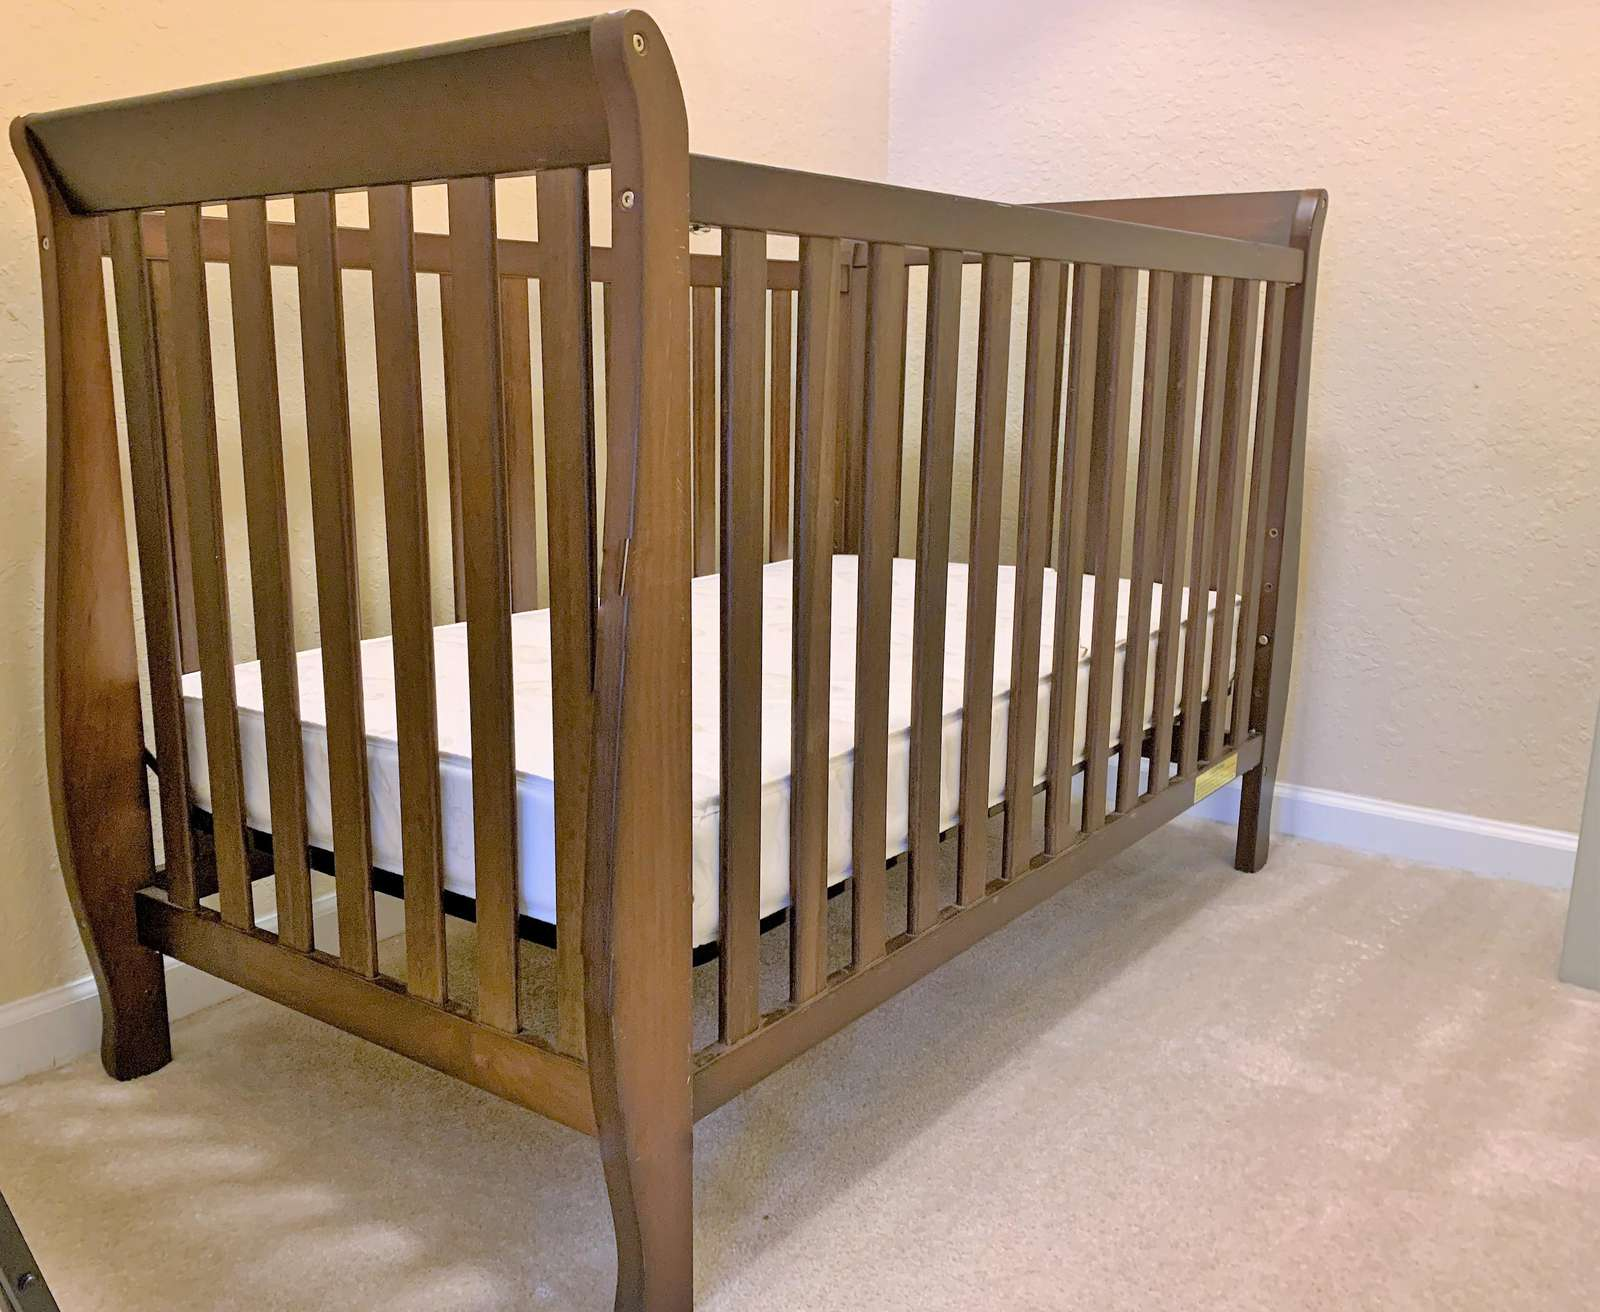 Crib available - please check availability